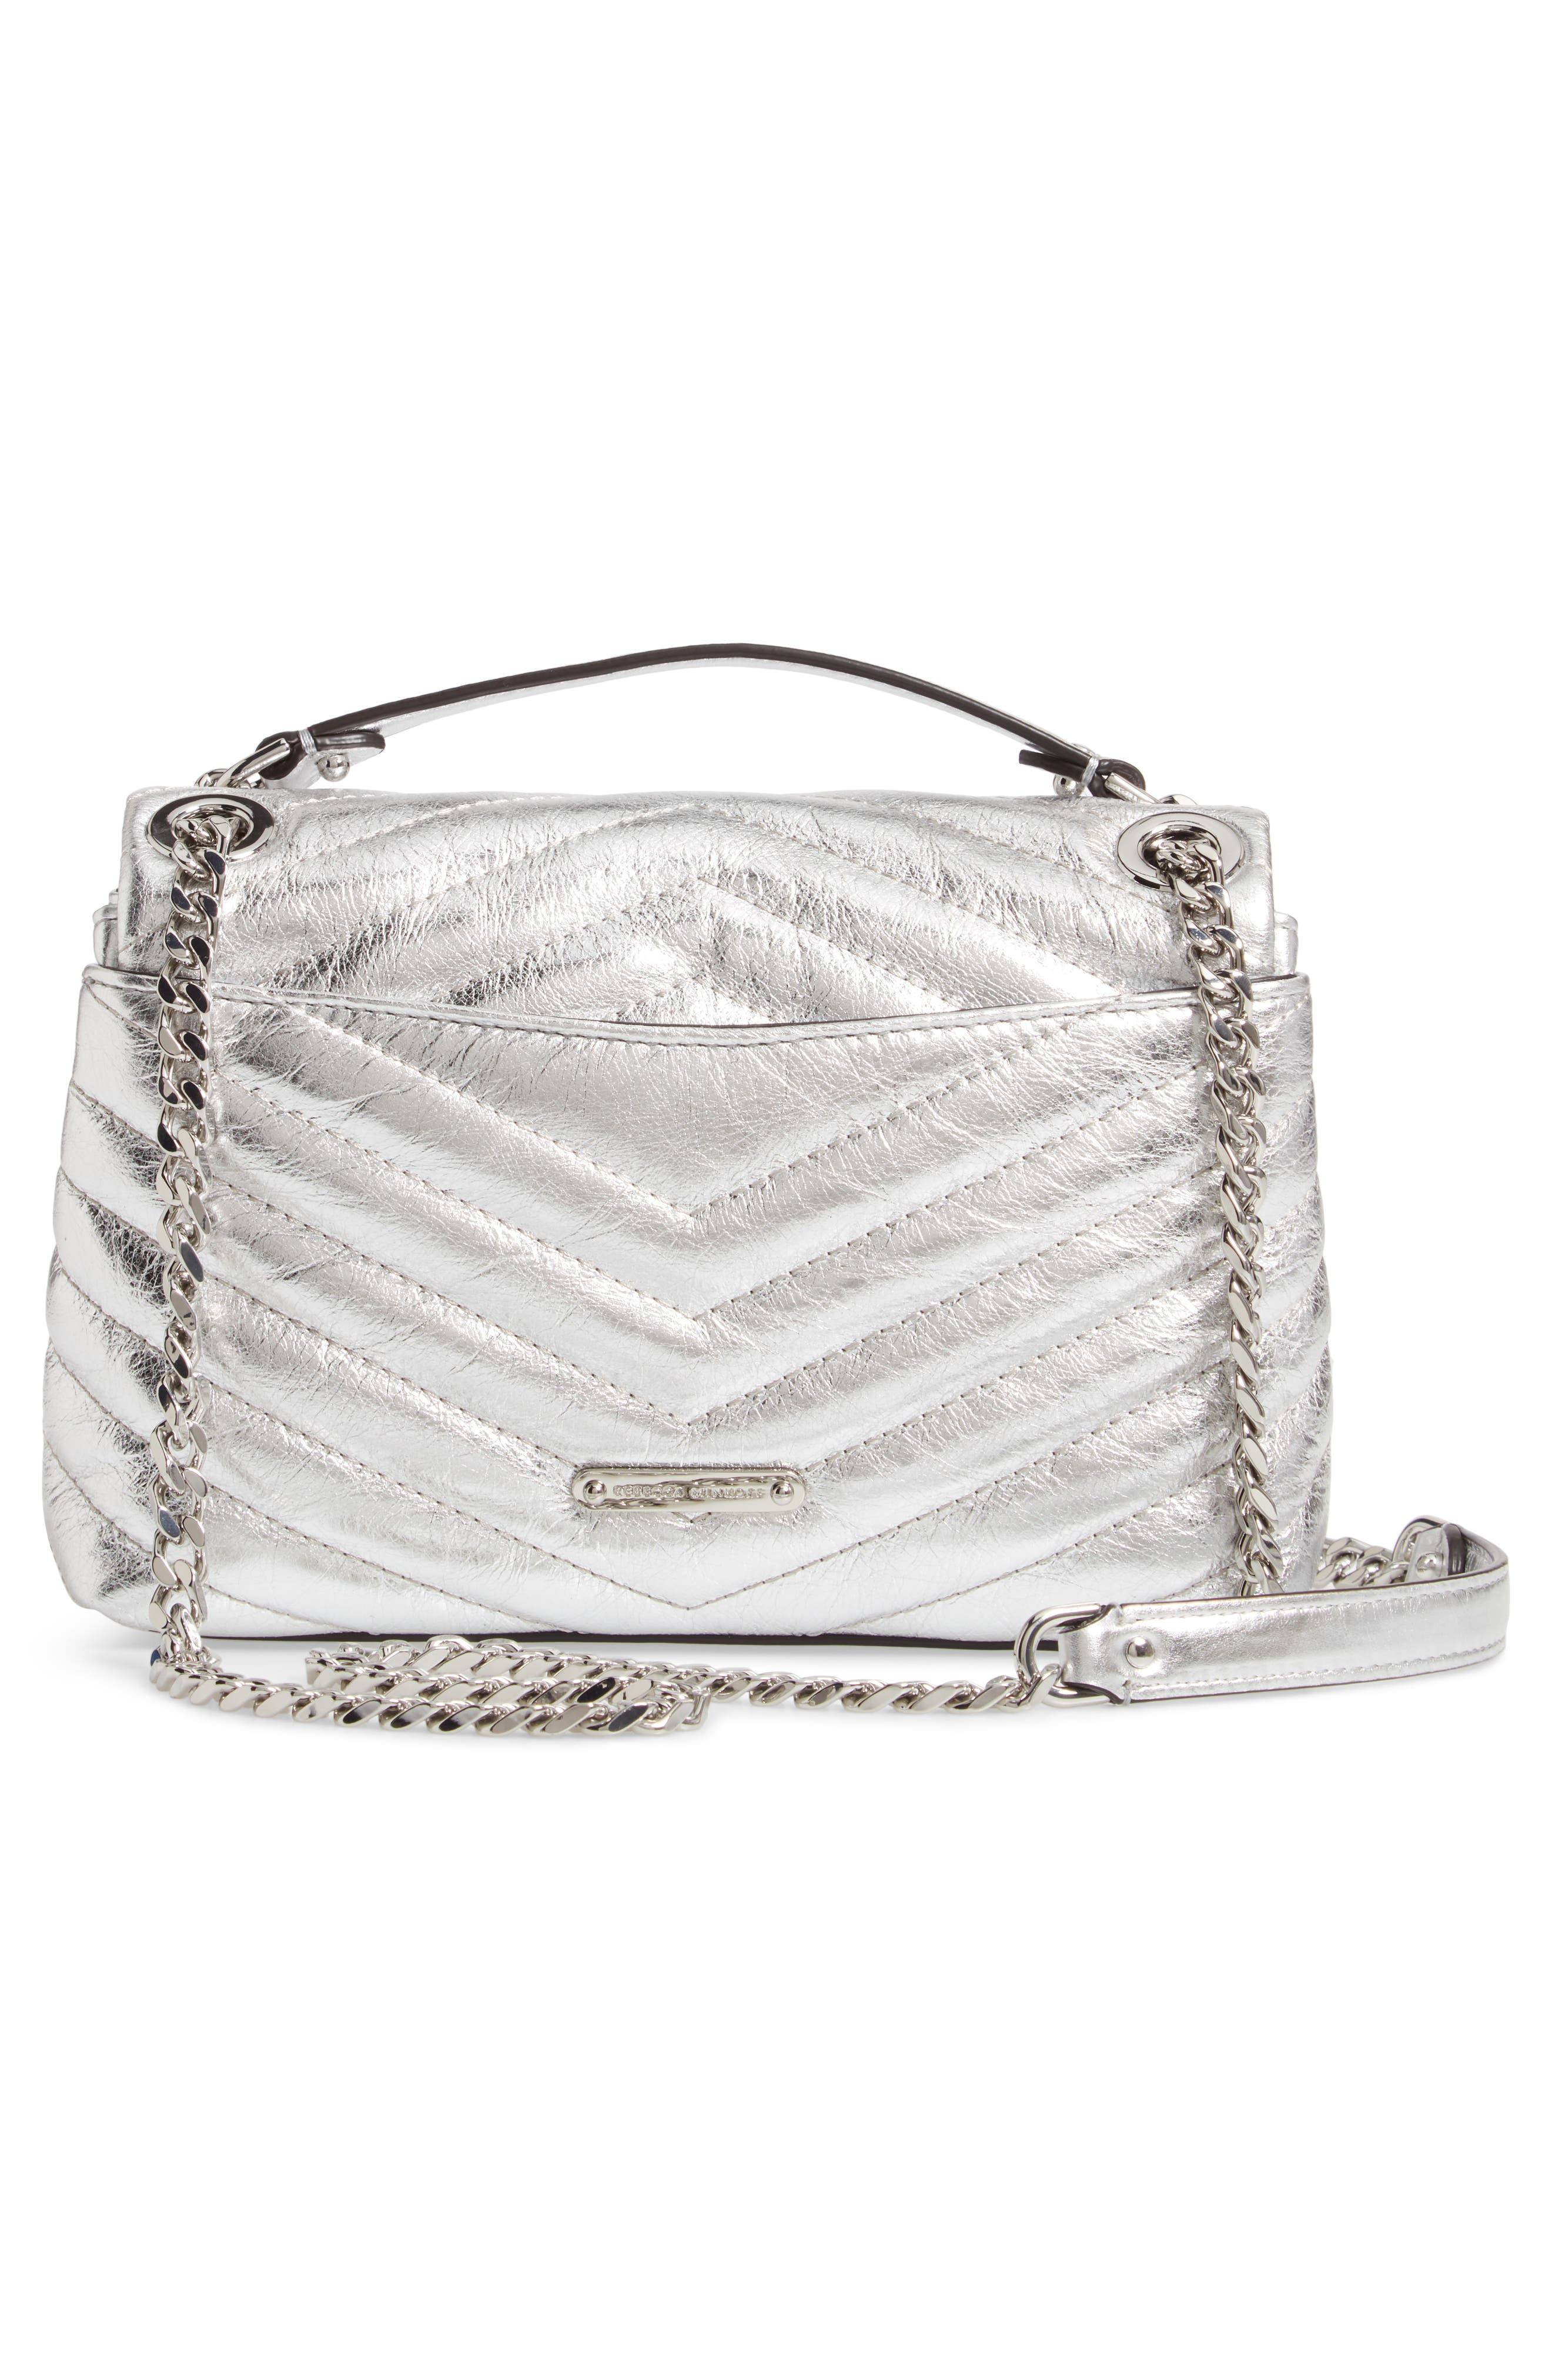 REBECCA MINKOFF, Edie Metallic Leather Shoulder Bag, Alternate thumbnail 4, color, SILVER